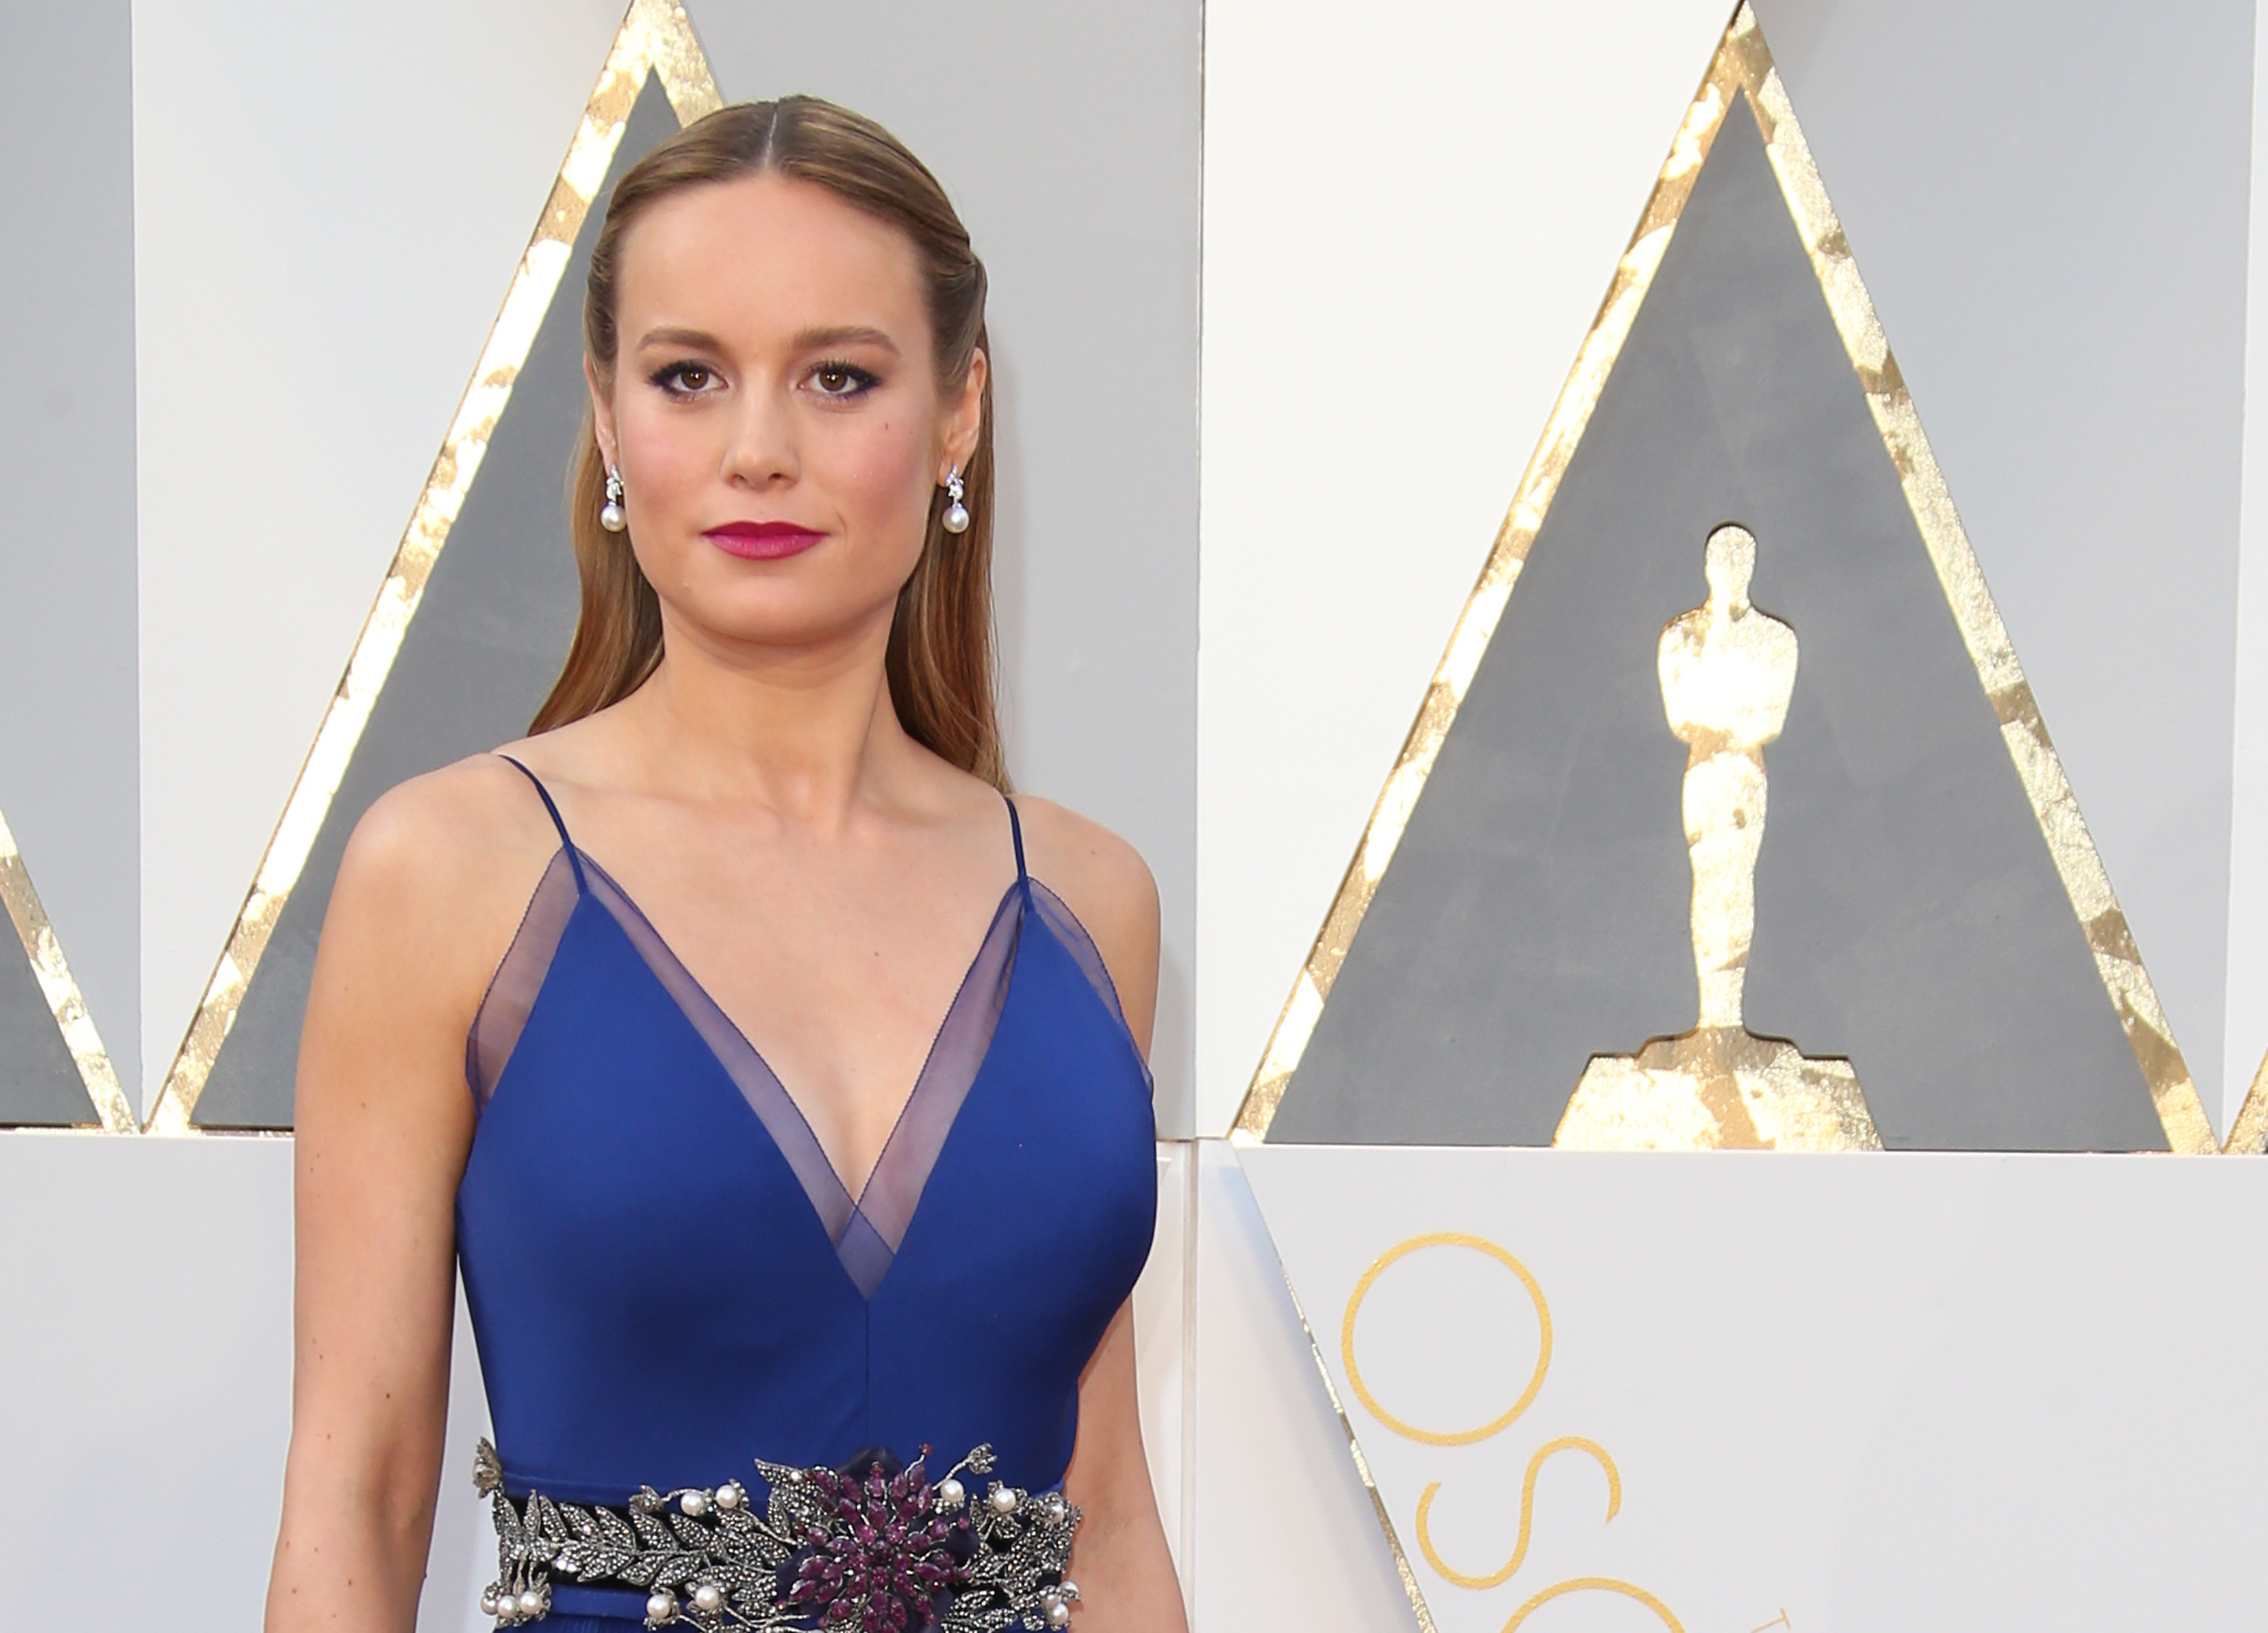 HOLLYWOOD, CA - FEBRUARY 28: Actress Brie Larson attends the 88th Annual Academy Awards at Hollywood & Highland Center on February 28, 2016 in Hollywood, California. (Photo by Dan MacMedan/WireImage)